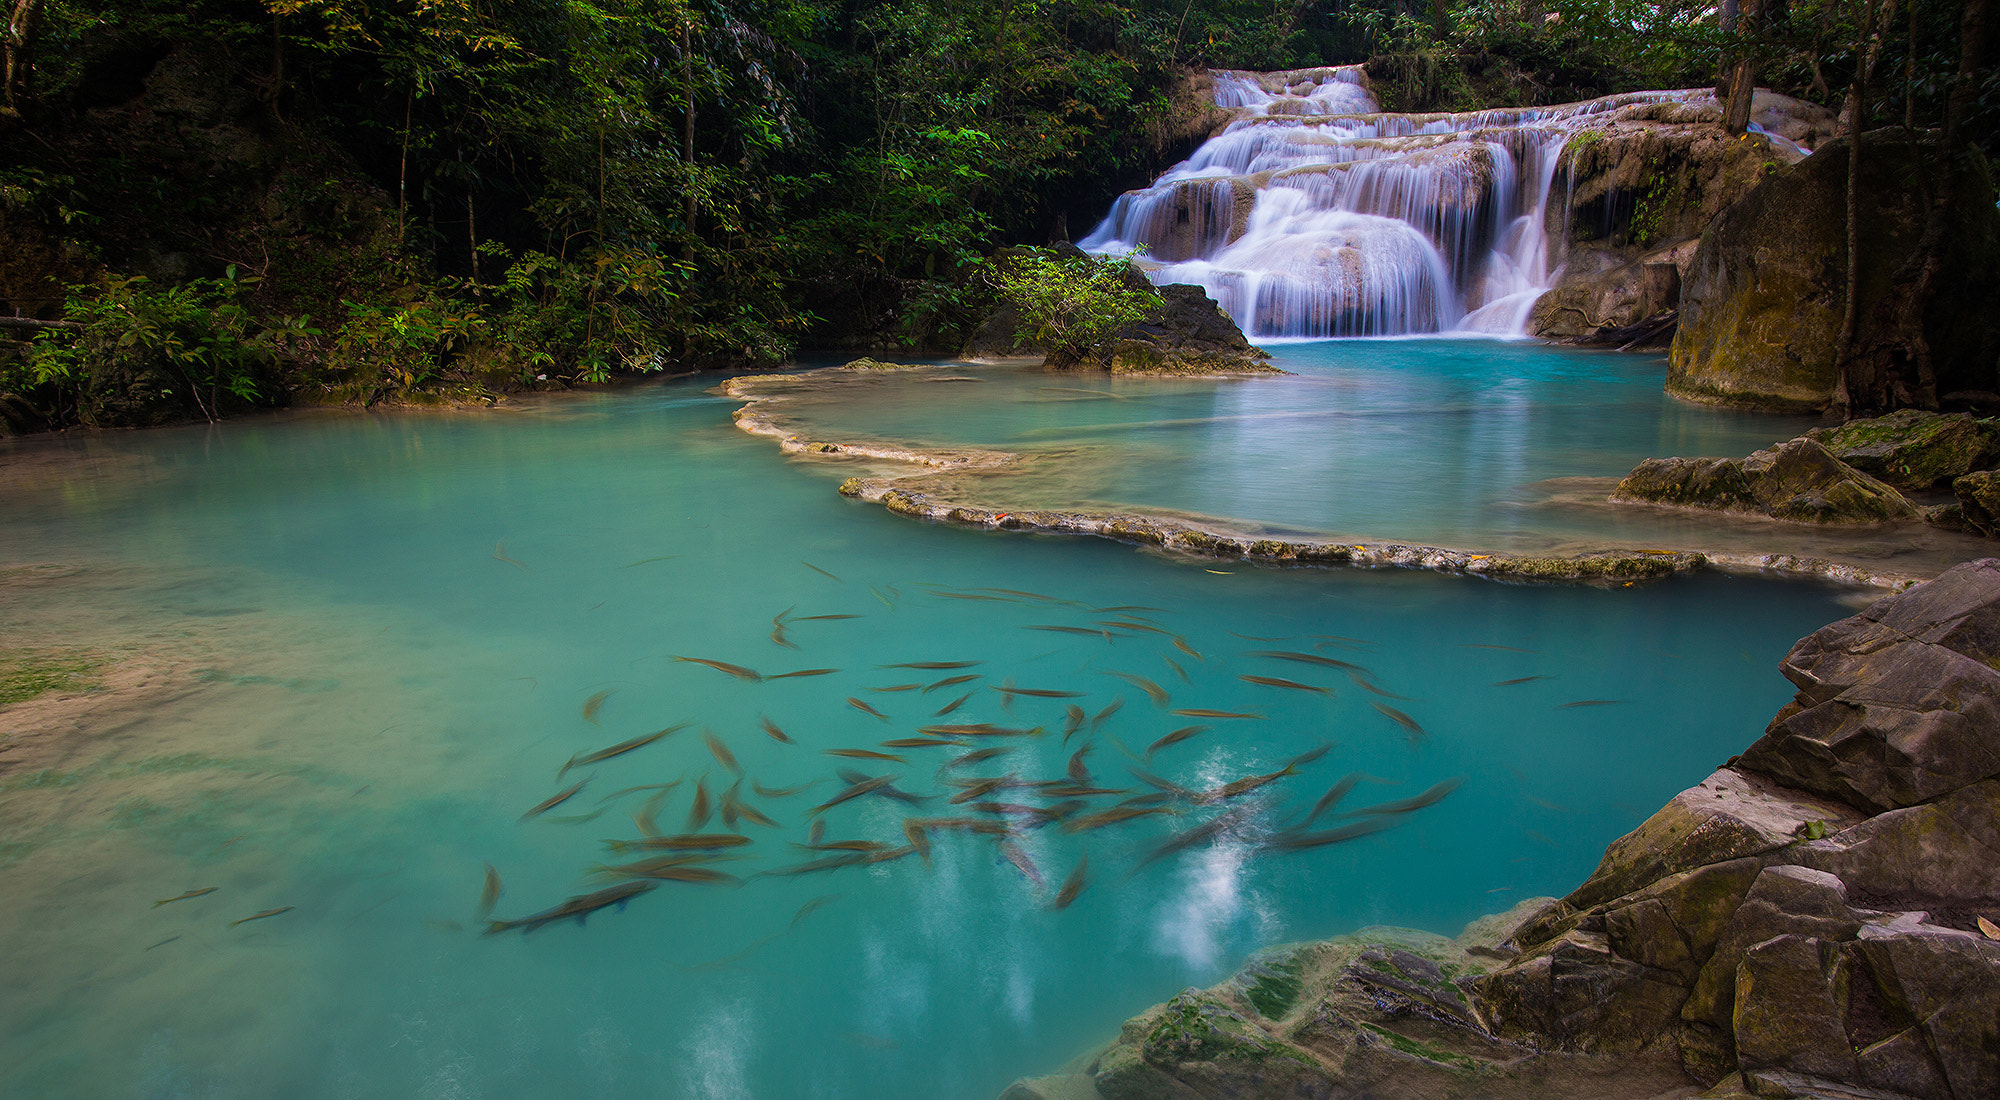 Photograph Kanchanaburi by Jatupol S Ball on 500px